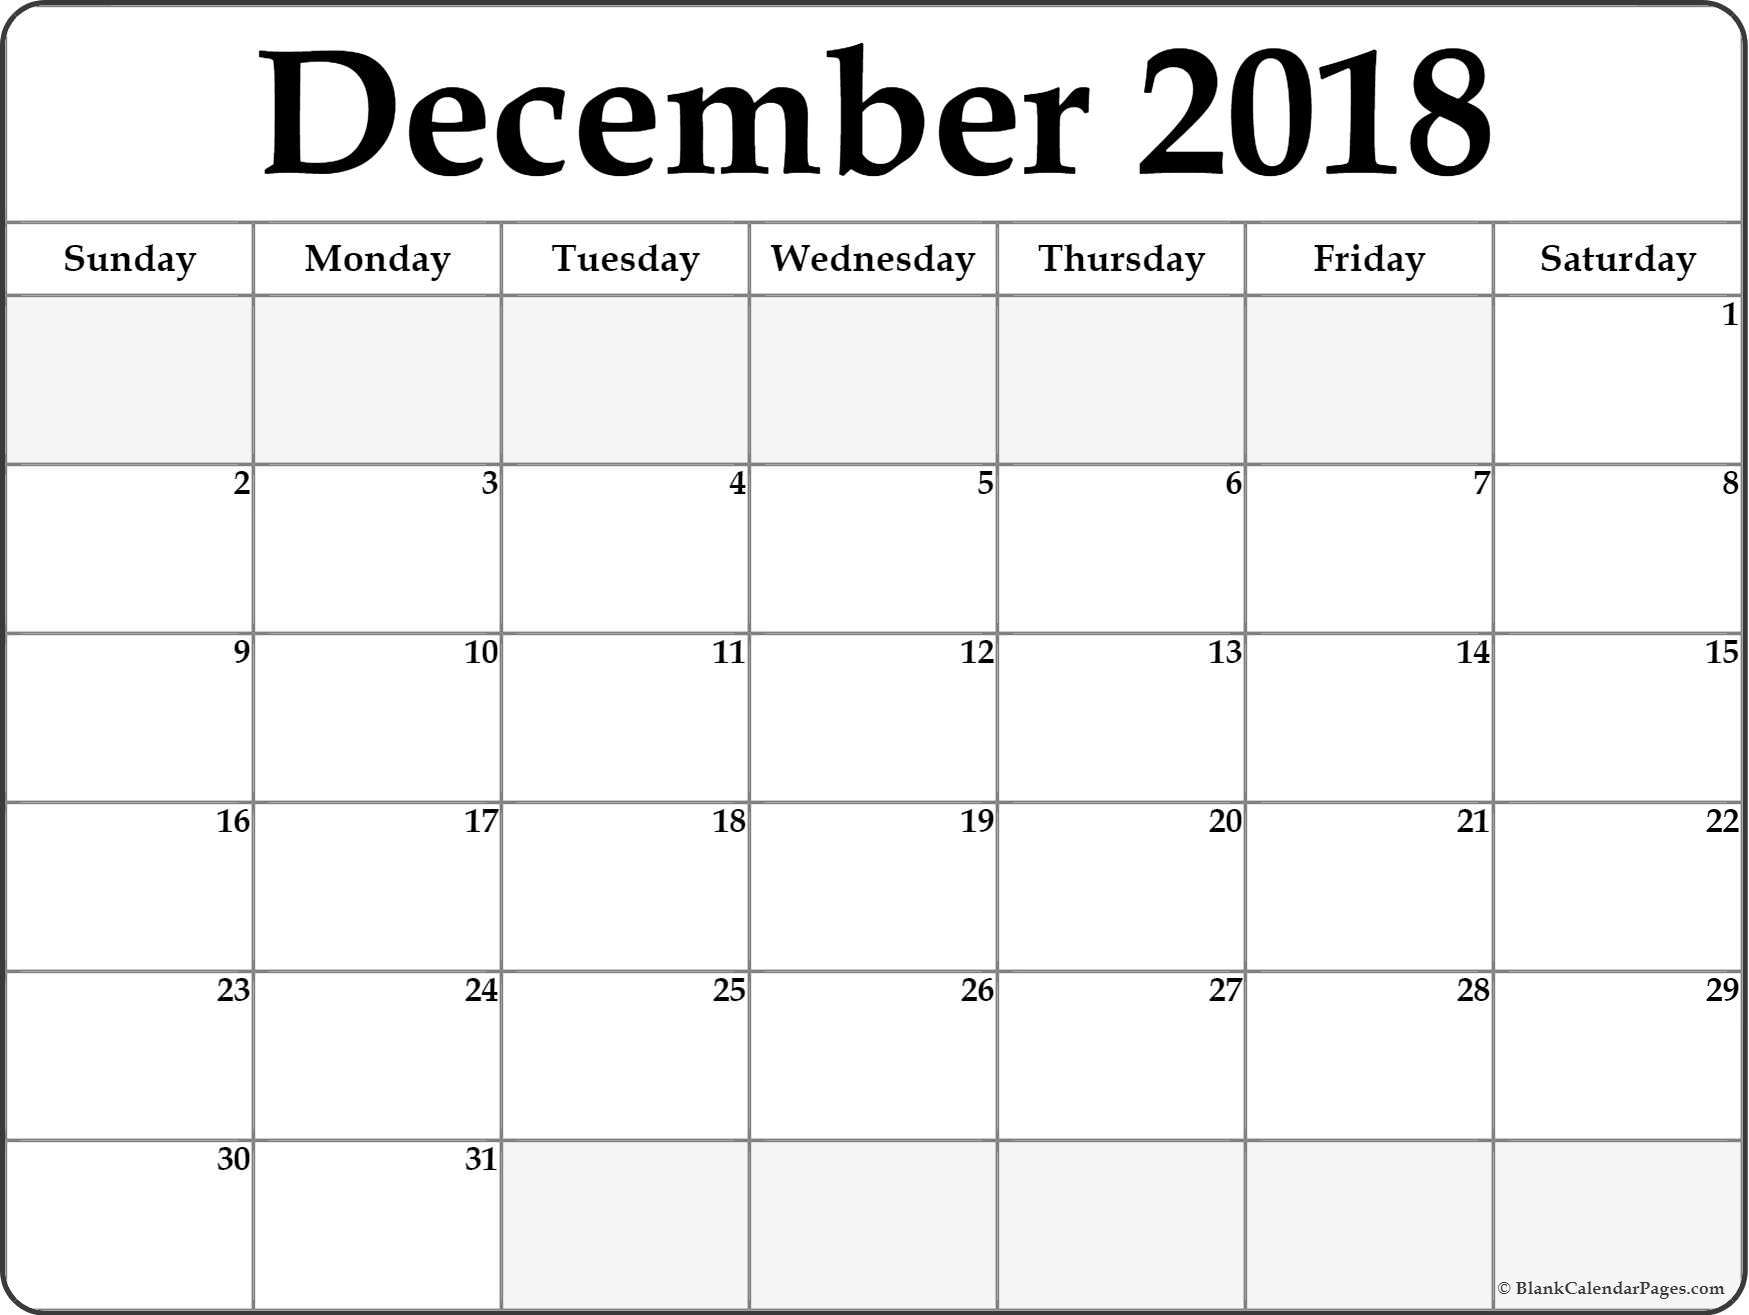 Print December 2018 Calendar Document